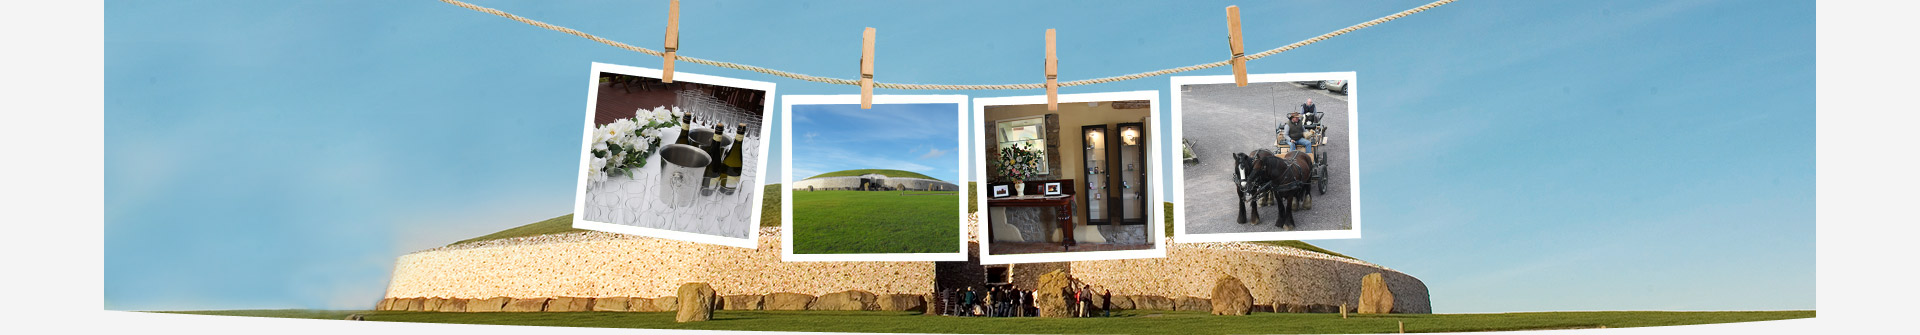 Newgrange Lodge - accommodation beside Newgrange county Meath